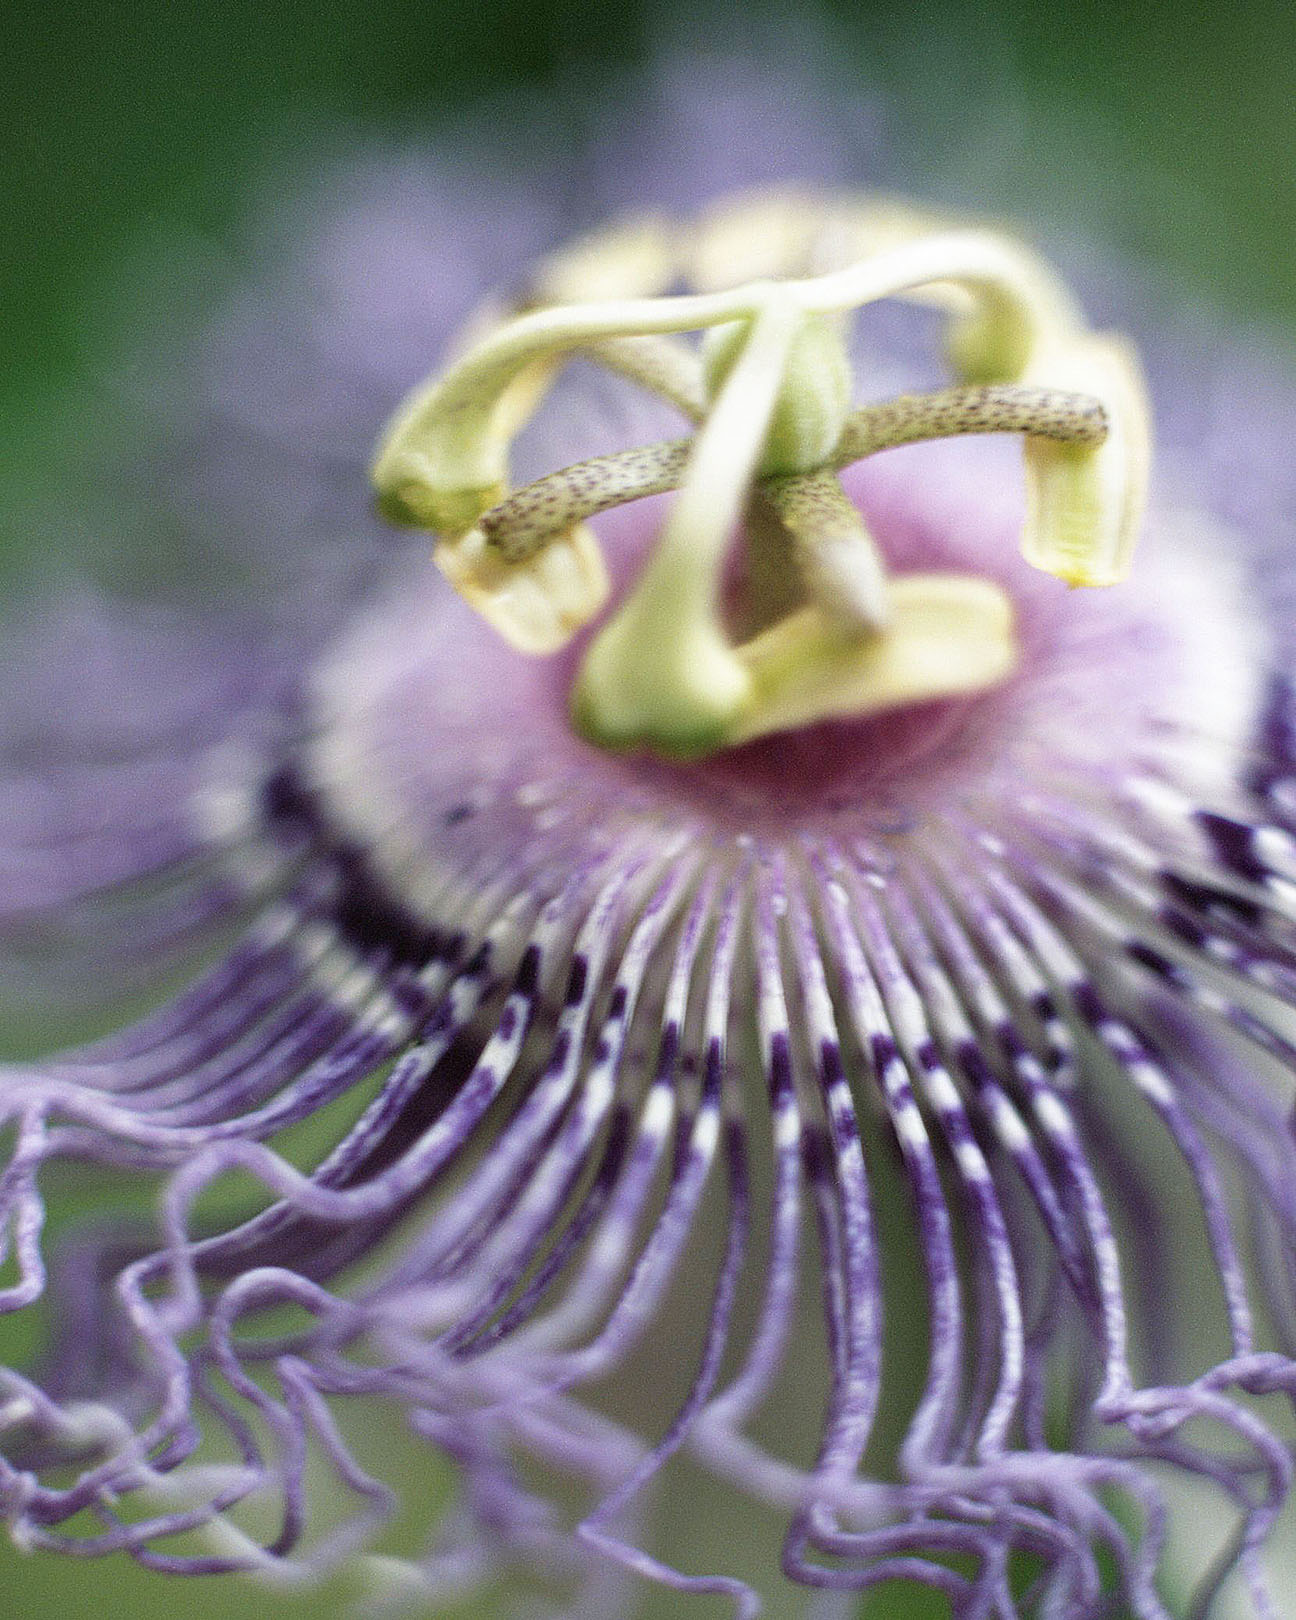 4 Honour Stewart Passiflora incarnata flower phase vertical.jpg